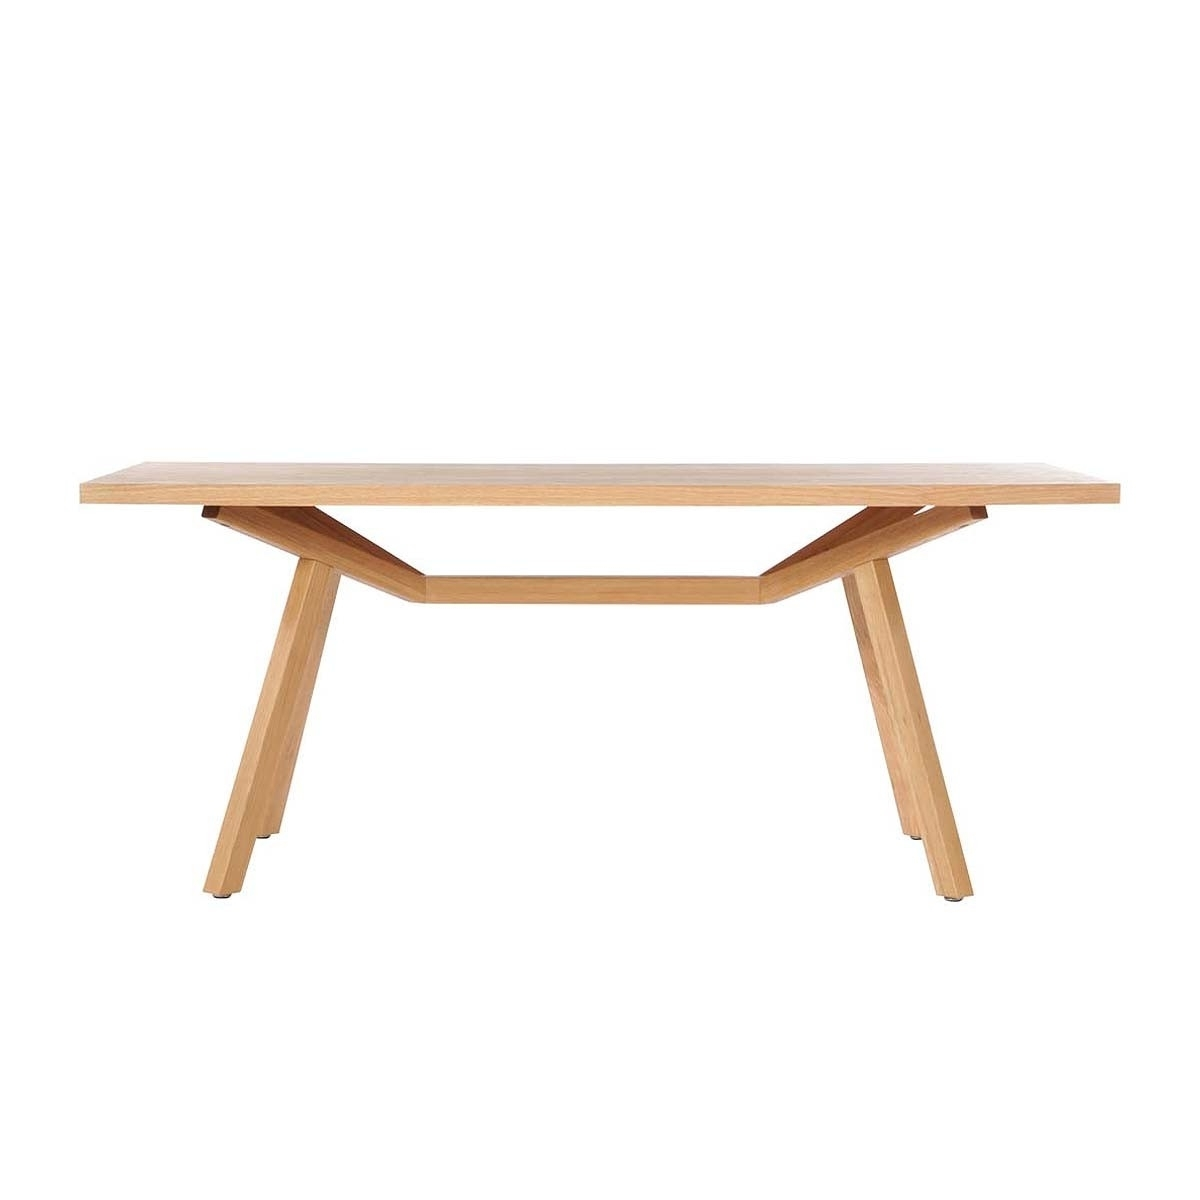 Famous Tokyo Dining Tables Inside Sean Dix – Tokyo Dining Table (Oak, 180Cm) – Modern Dining Tables (View 12 of 25)